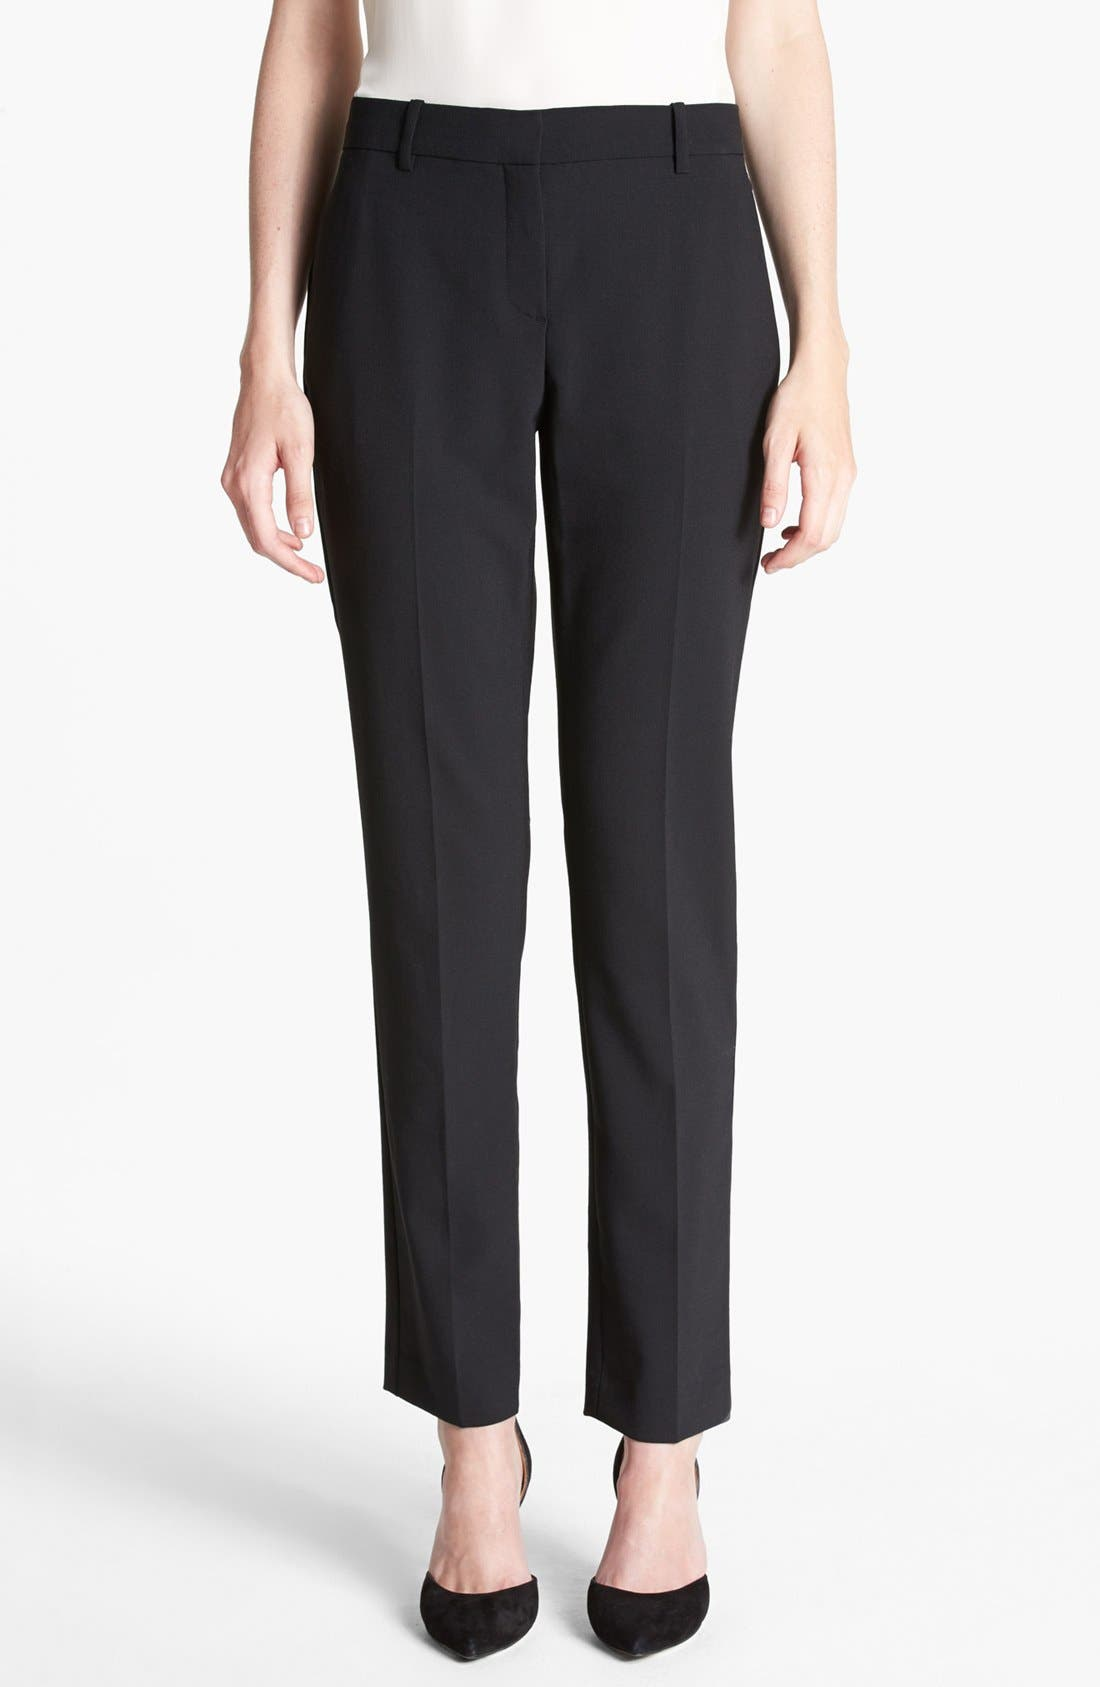 Alternate Image 1 Selected - Theory 'Louise' Ankle Stretch Pants